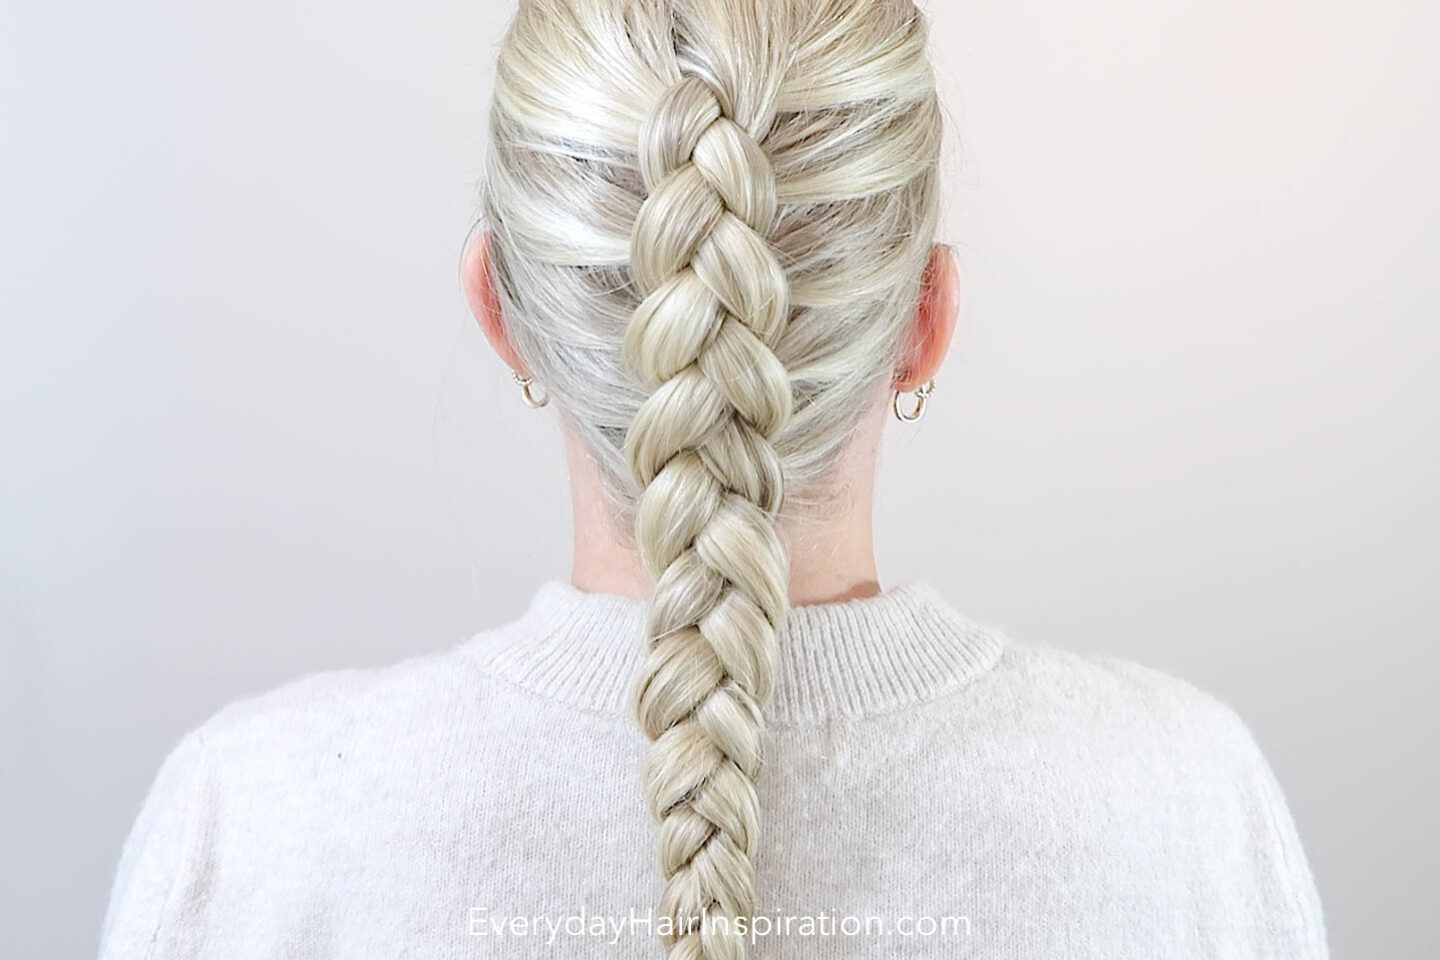 Blonde girl seen from the back with a dutch braid in her hair.